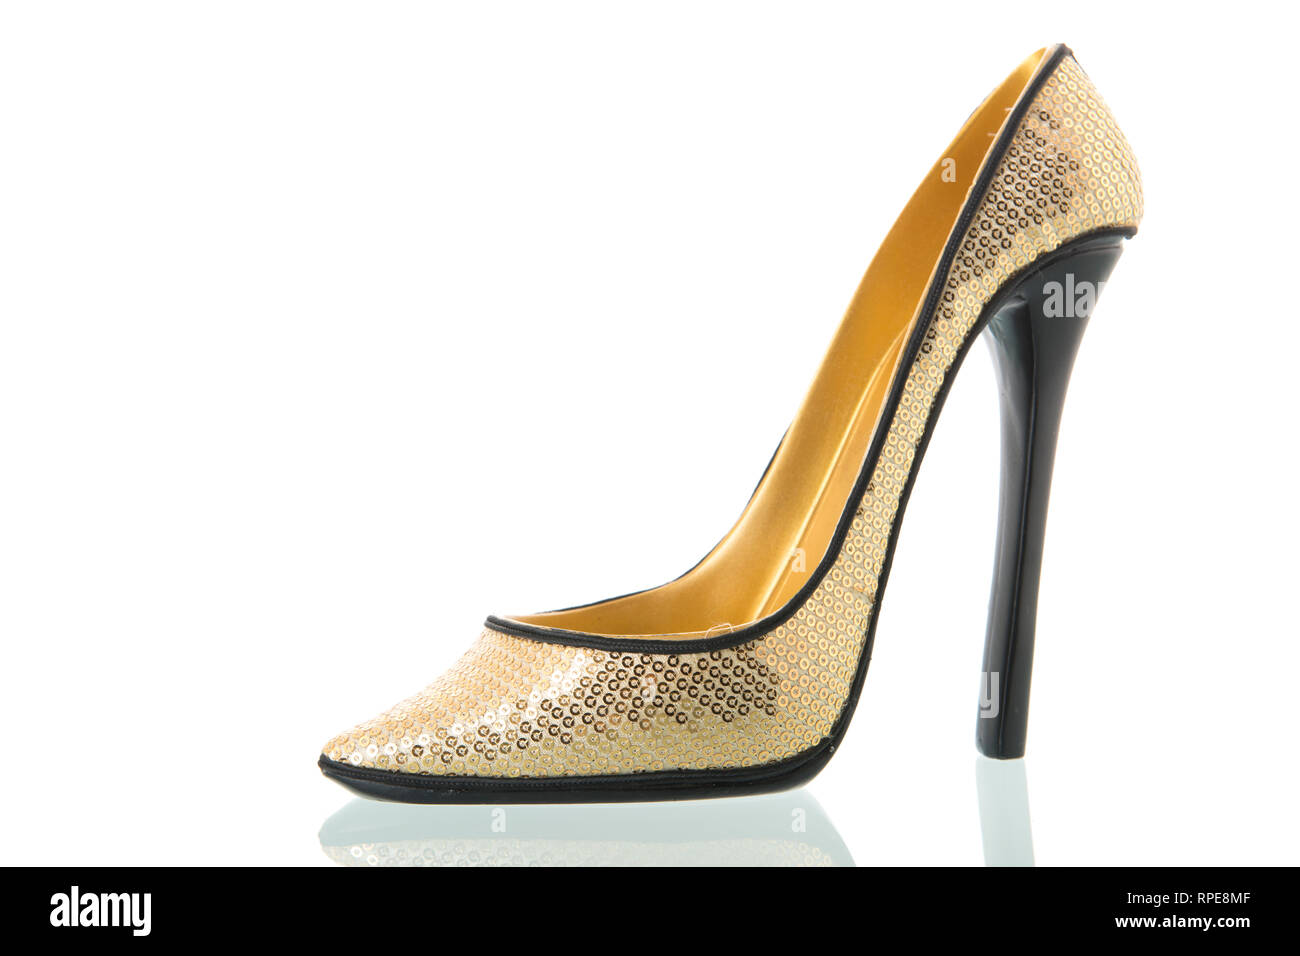 b872cda4cd Golden high heel shoe with stiletto heels isolated over white background -  Stock Image